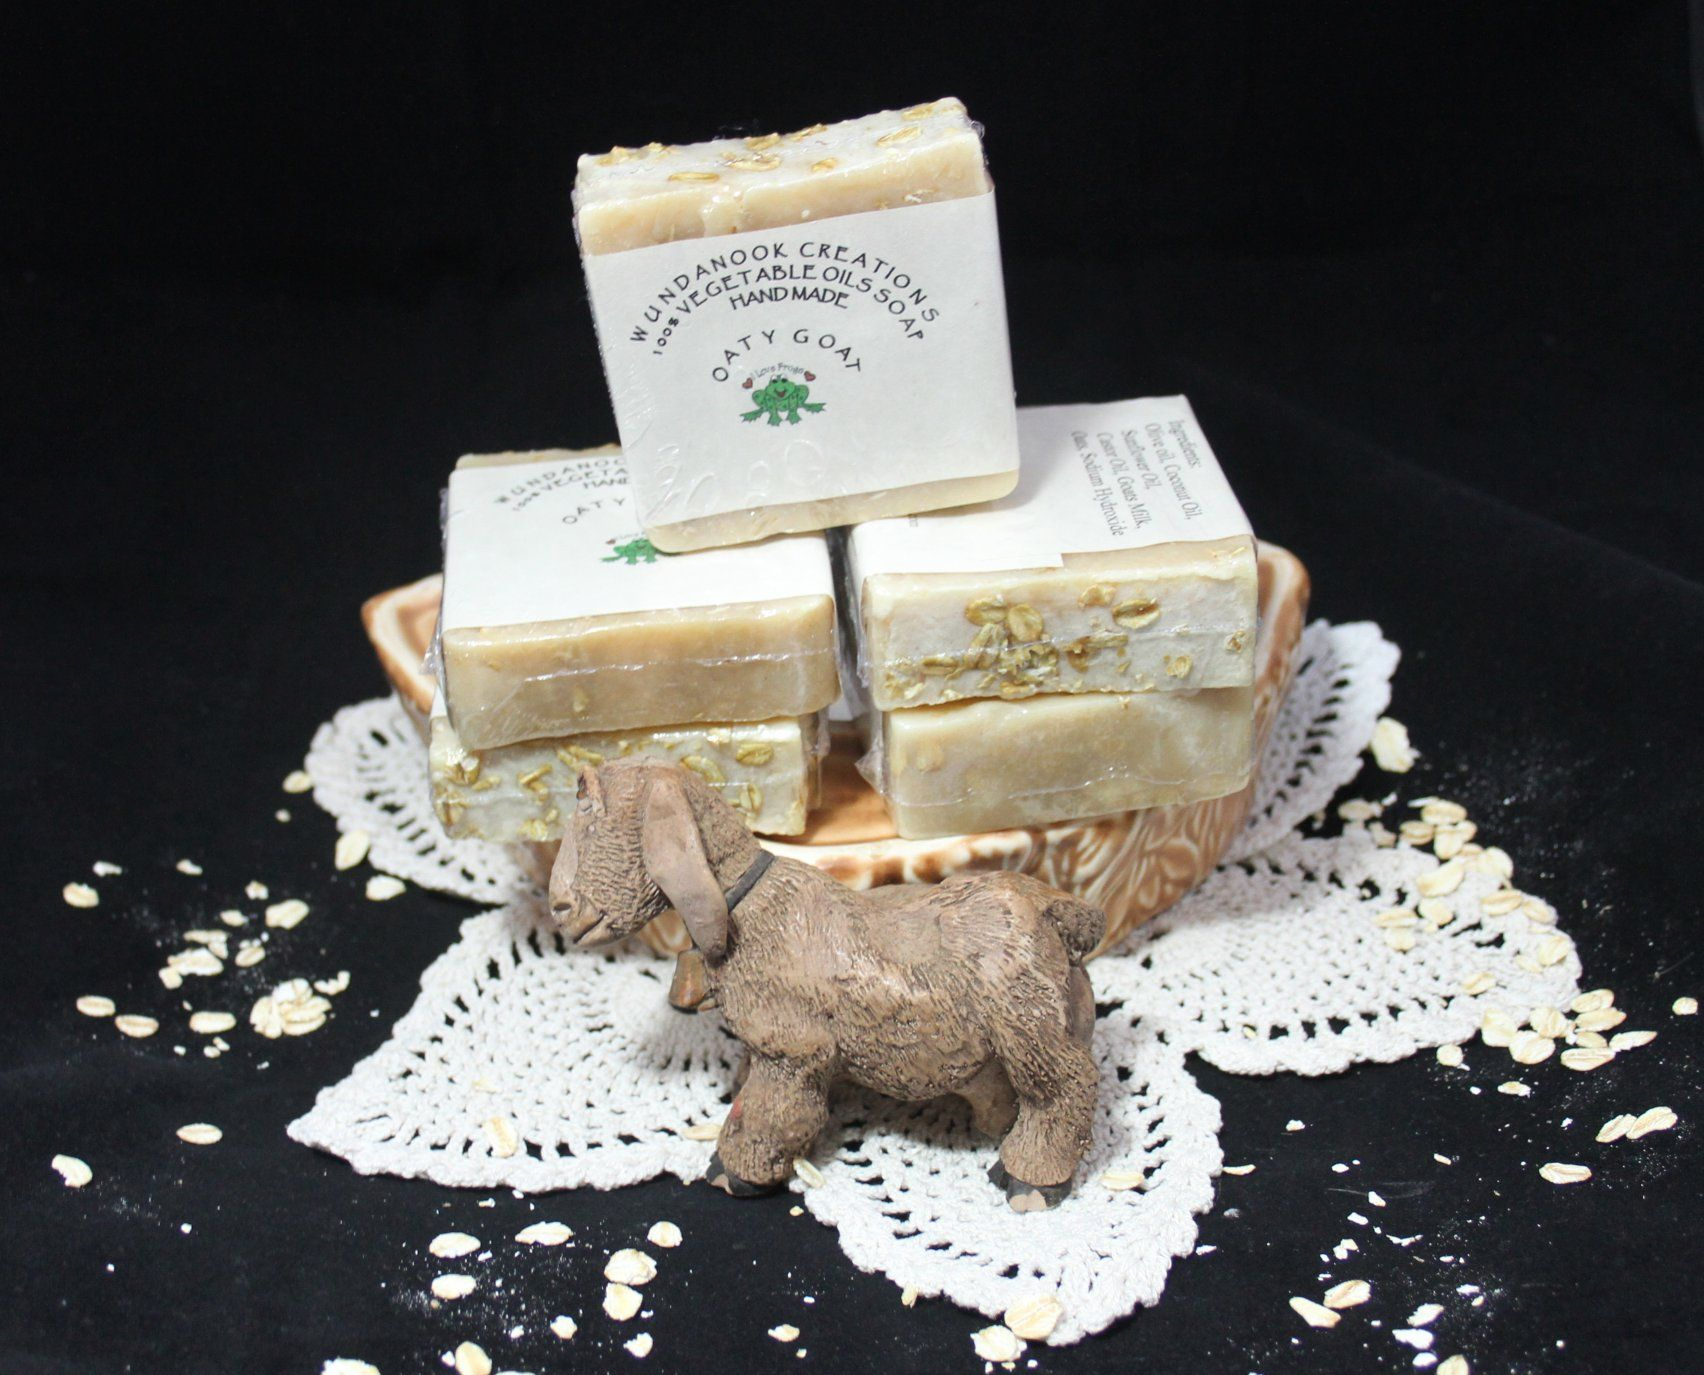 Oaty Goat Soap - 100% Goat Milk and rolled Oats